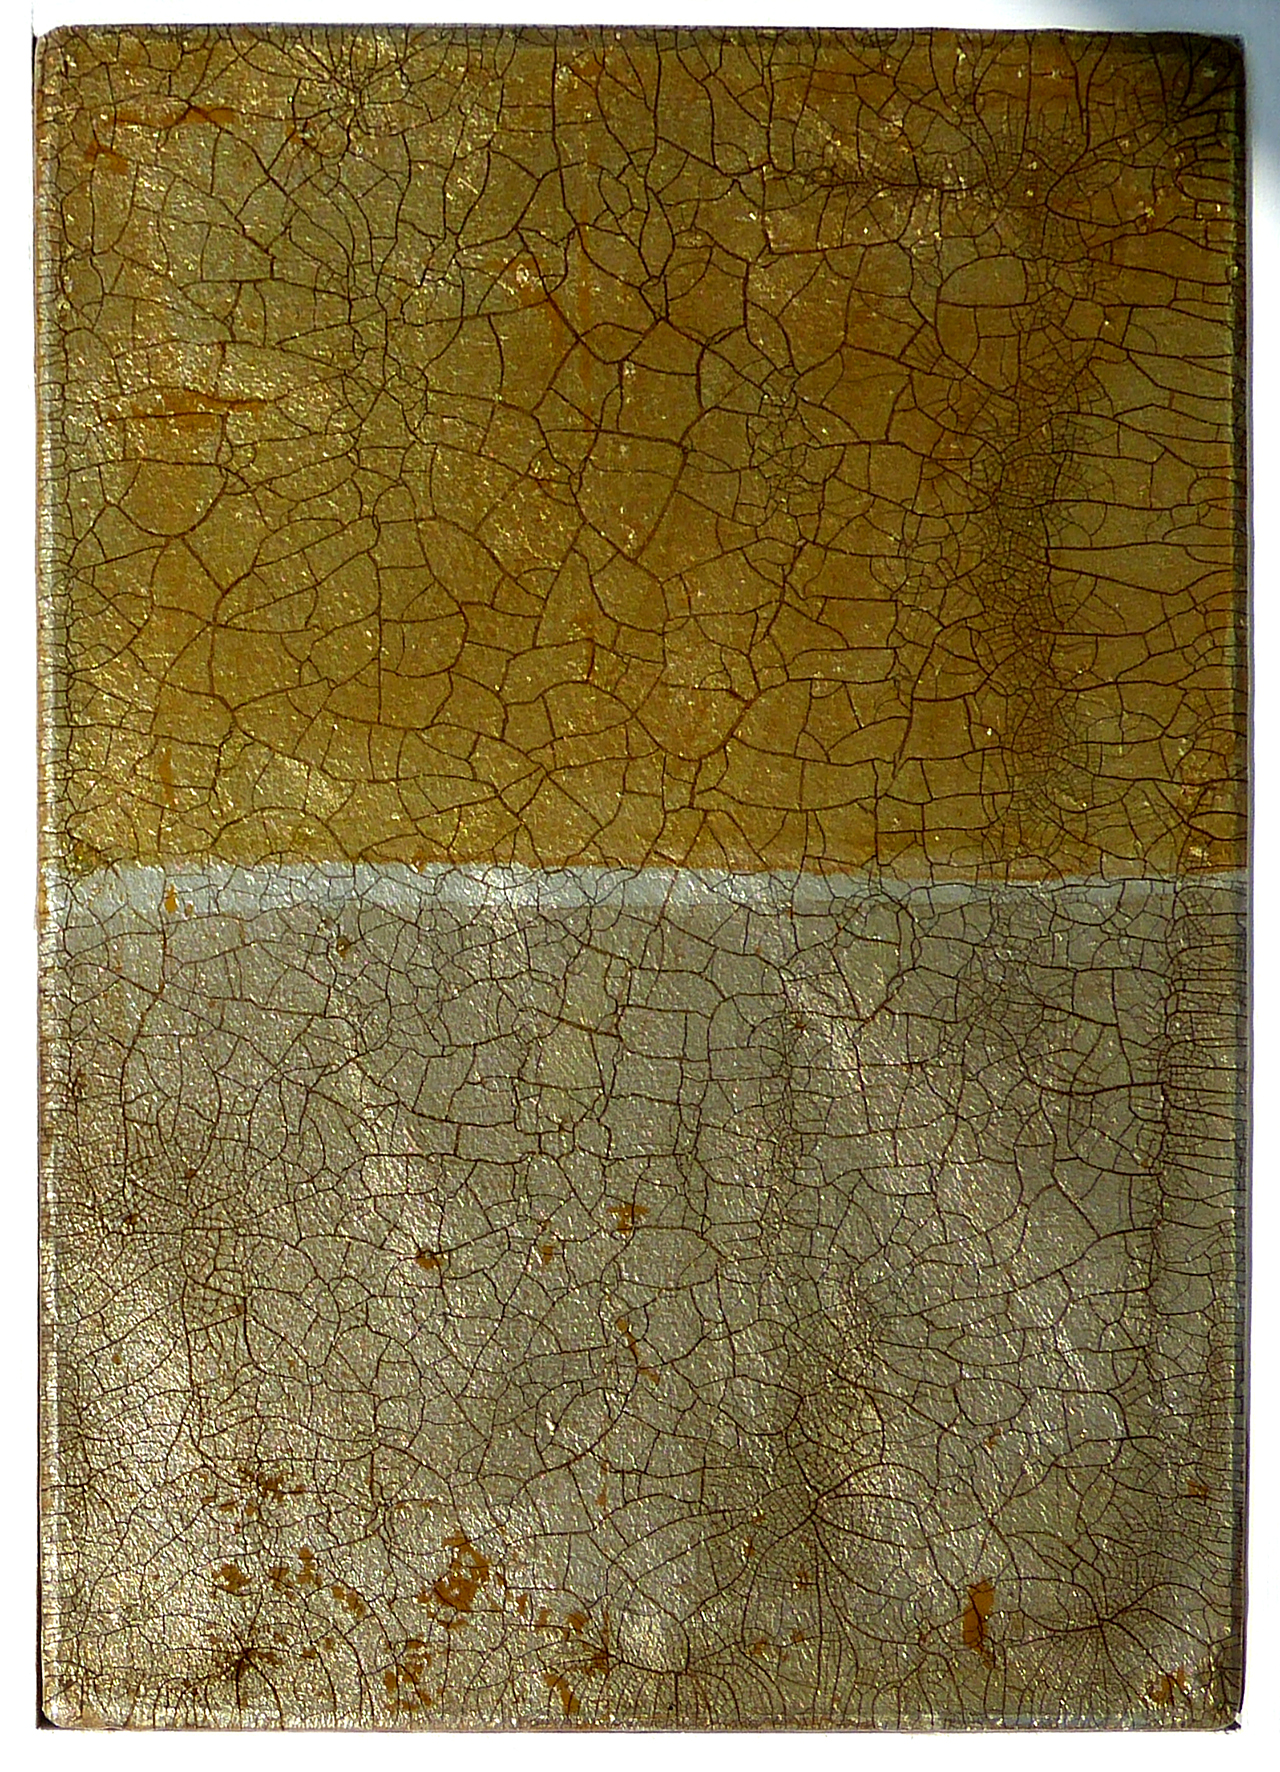 FRORE No.5 | 26x36cm gilded silver leaf and mixed media on board with high gloss epoxy resin | £490.00